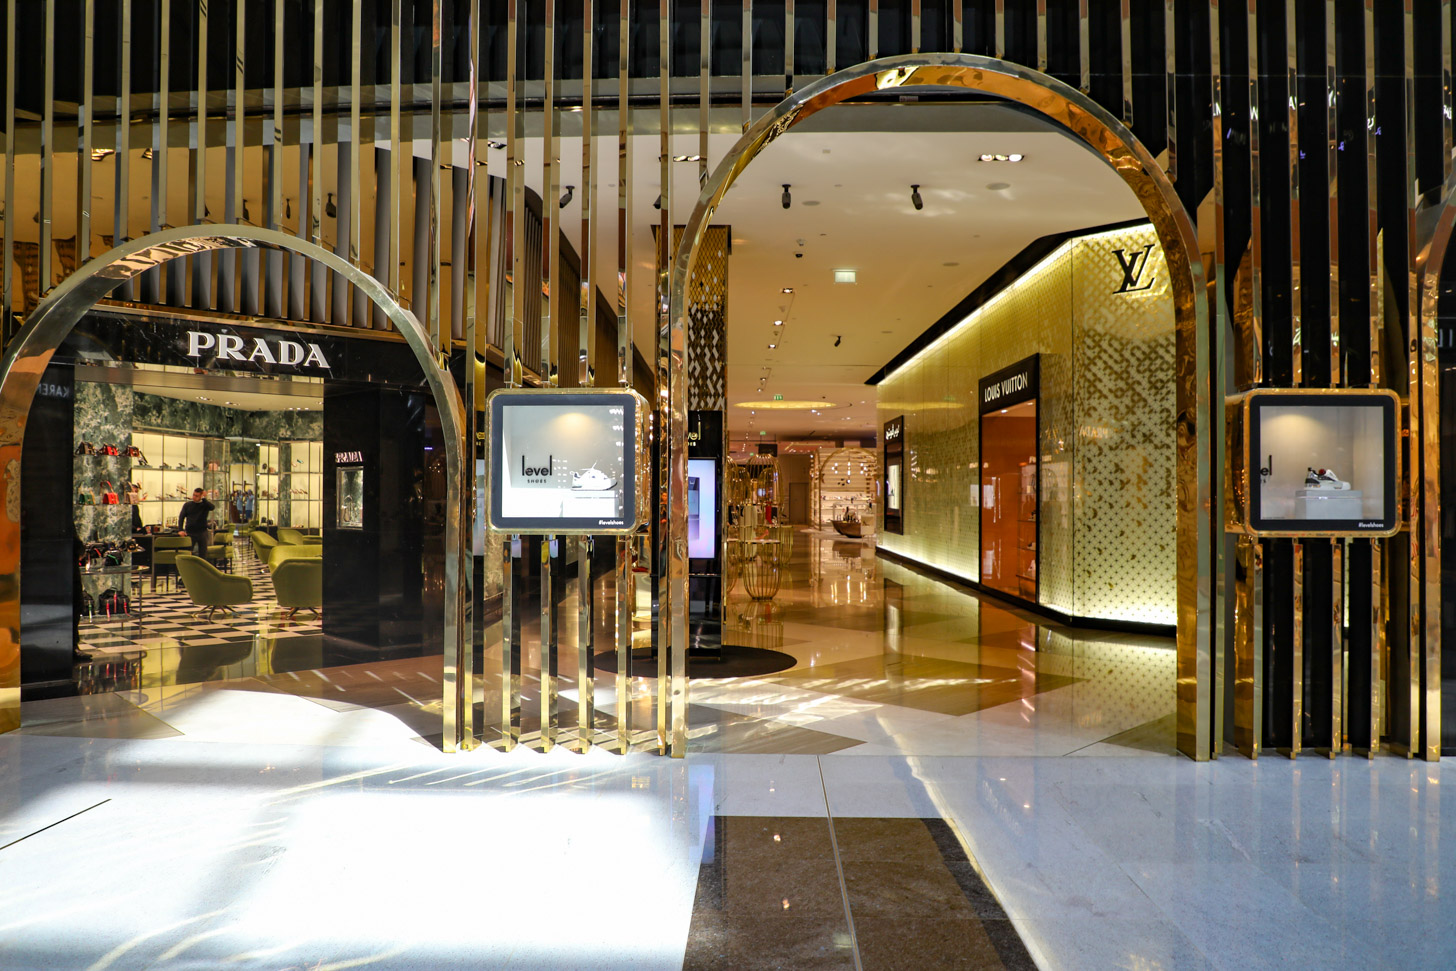 Prada en Louis Vuitton winkels in de Dubai Mall